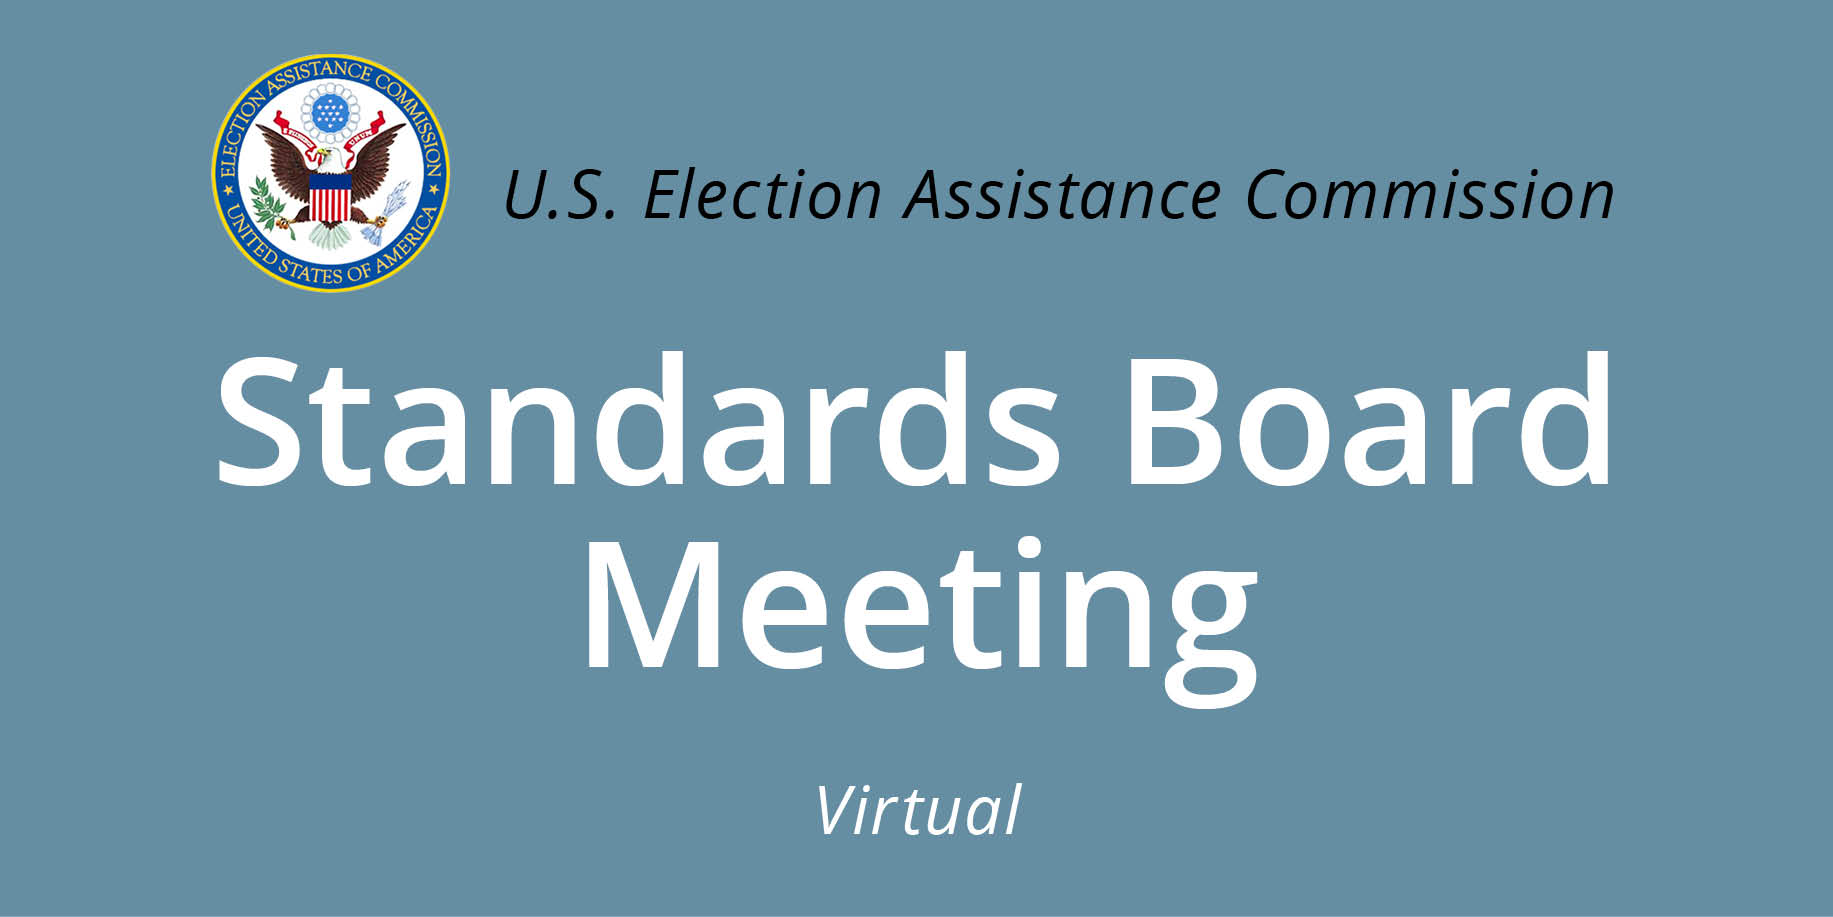 U.S. Election Assistance Commission Virtual Standards Board Meeting